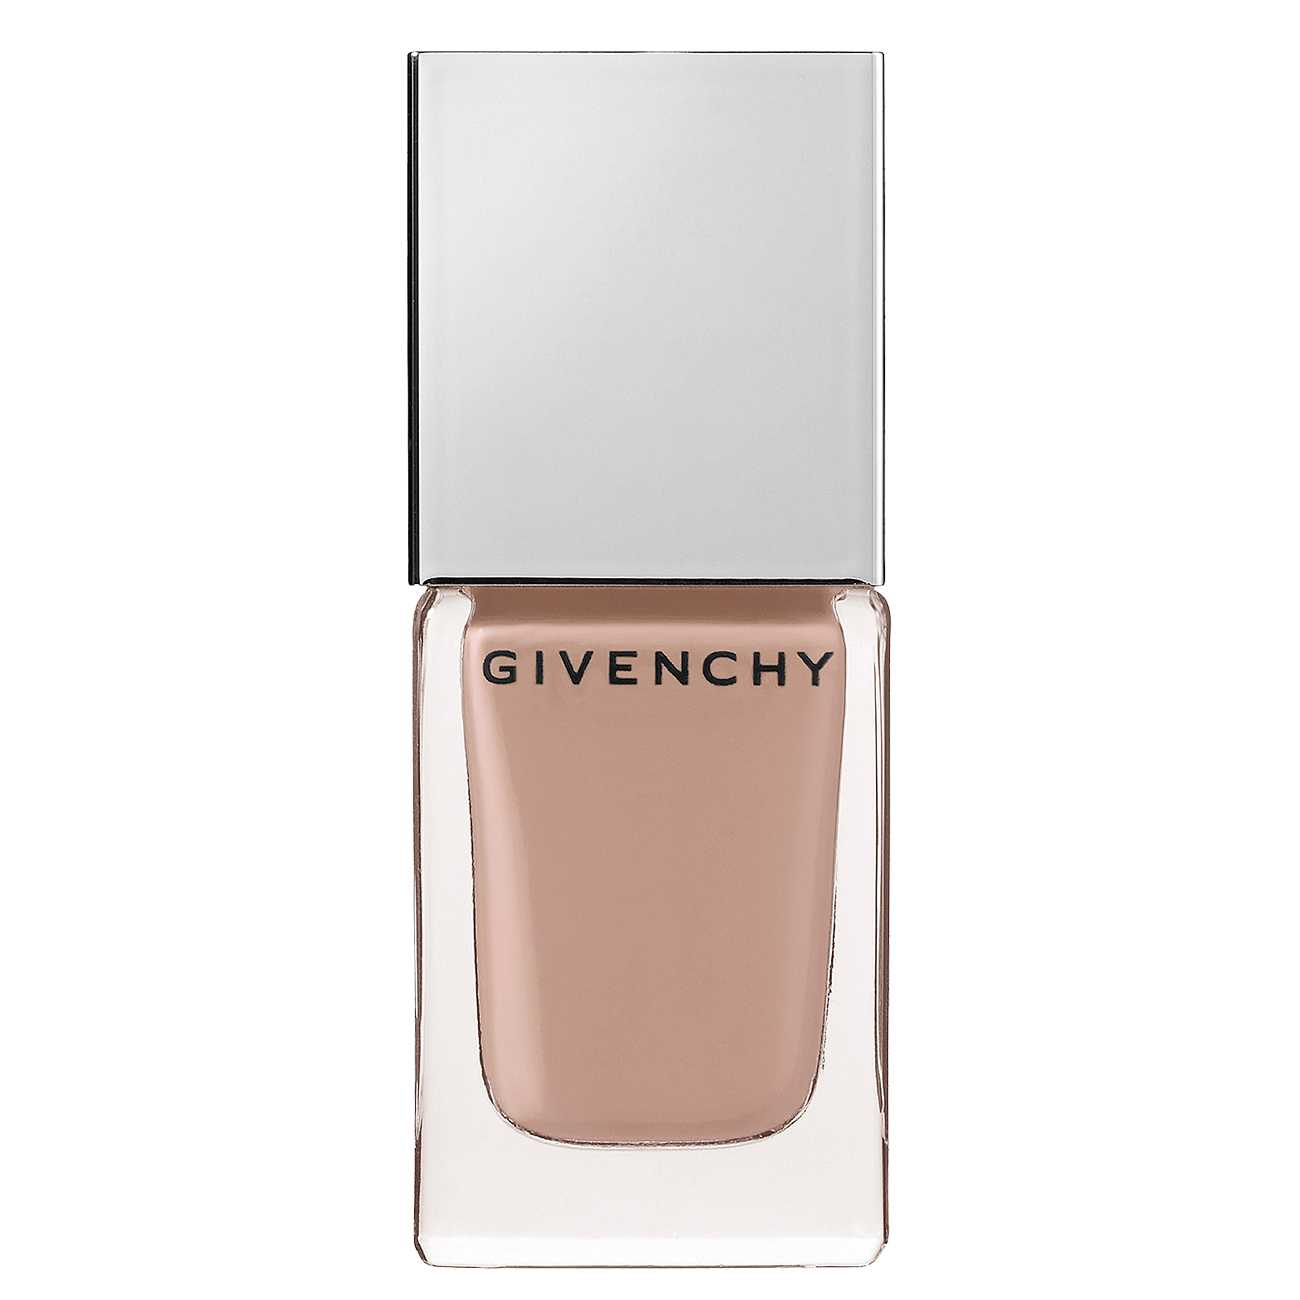 Le Vernis 10 Ml Beige Mousseline 2 Givenchy imagine 2021 bestvalue.eu